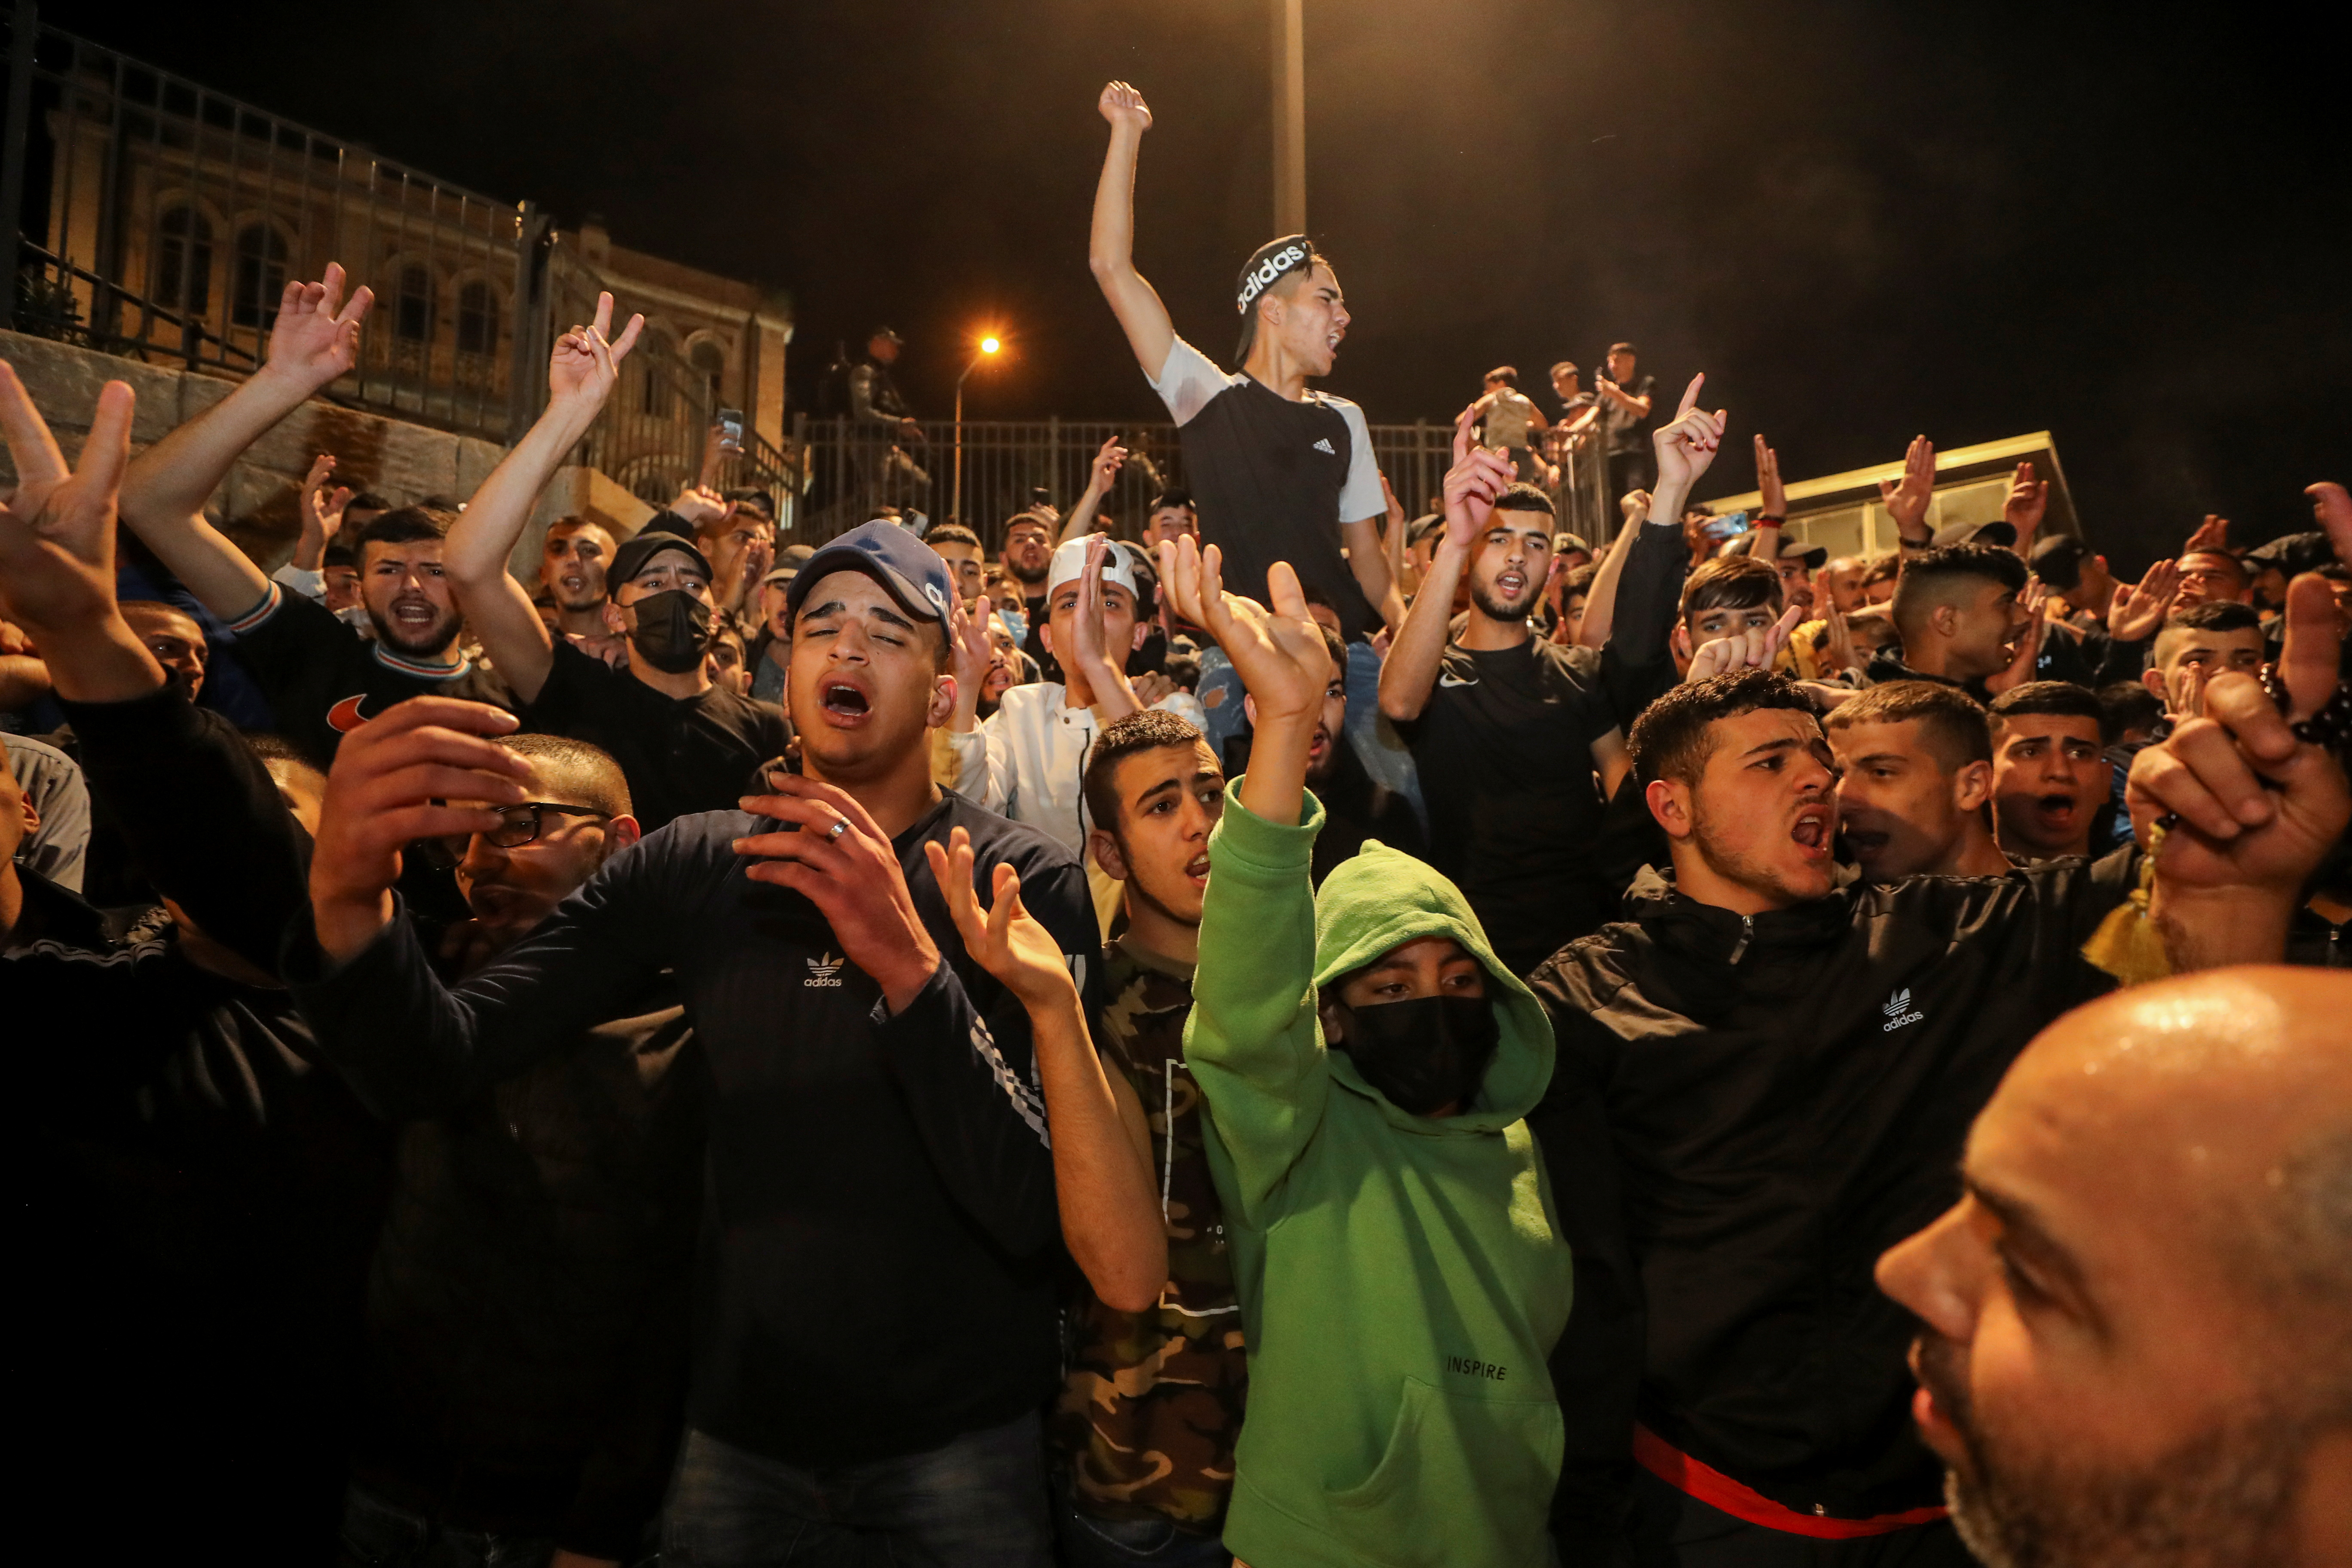 Palestinians celebrate outside Damascus Gate after barriers that were put up by Israeli police are removed, allowing access to the main square that has been the focus of a week of clashes around Jerusalem's Old City April 25, 2021. REUTERS/Ammar Awad